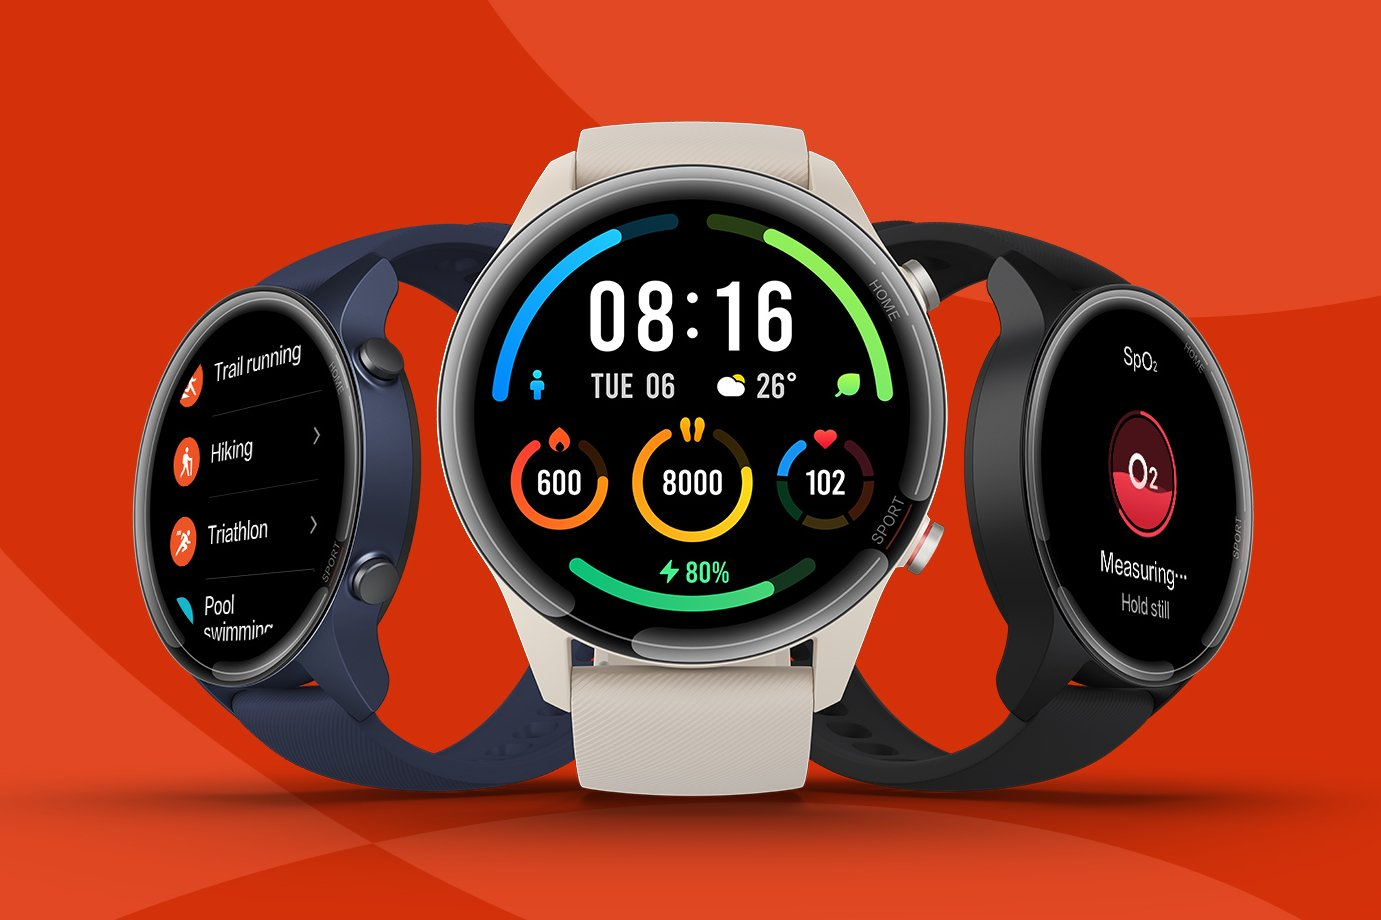 Smartwatches fuel smart wearables shipments in Q2 of 2021